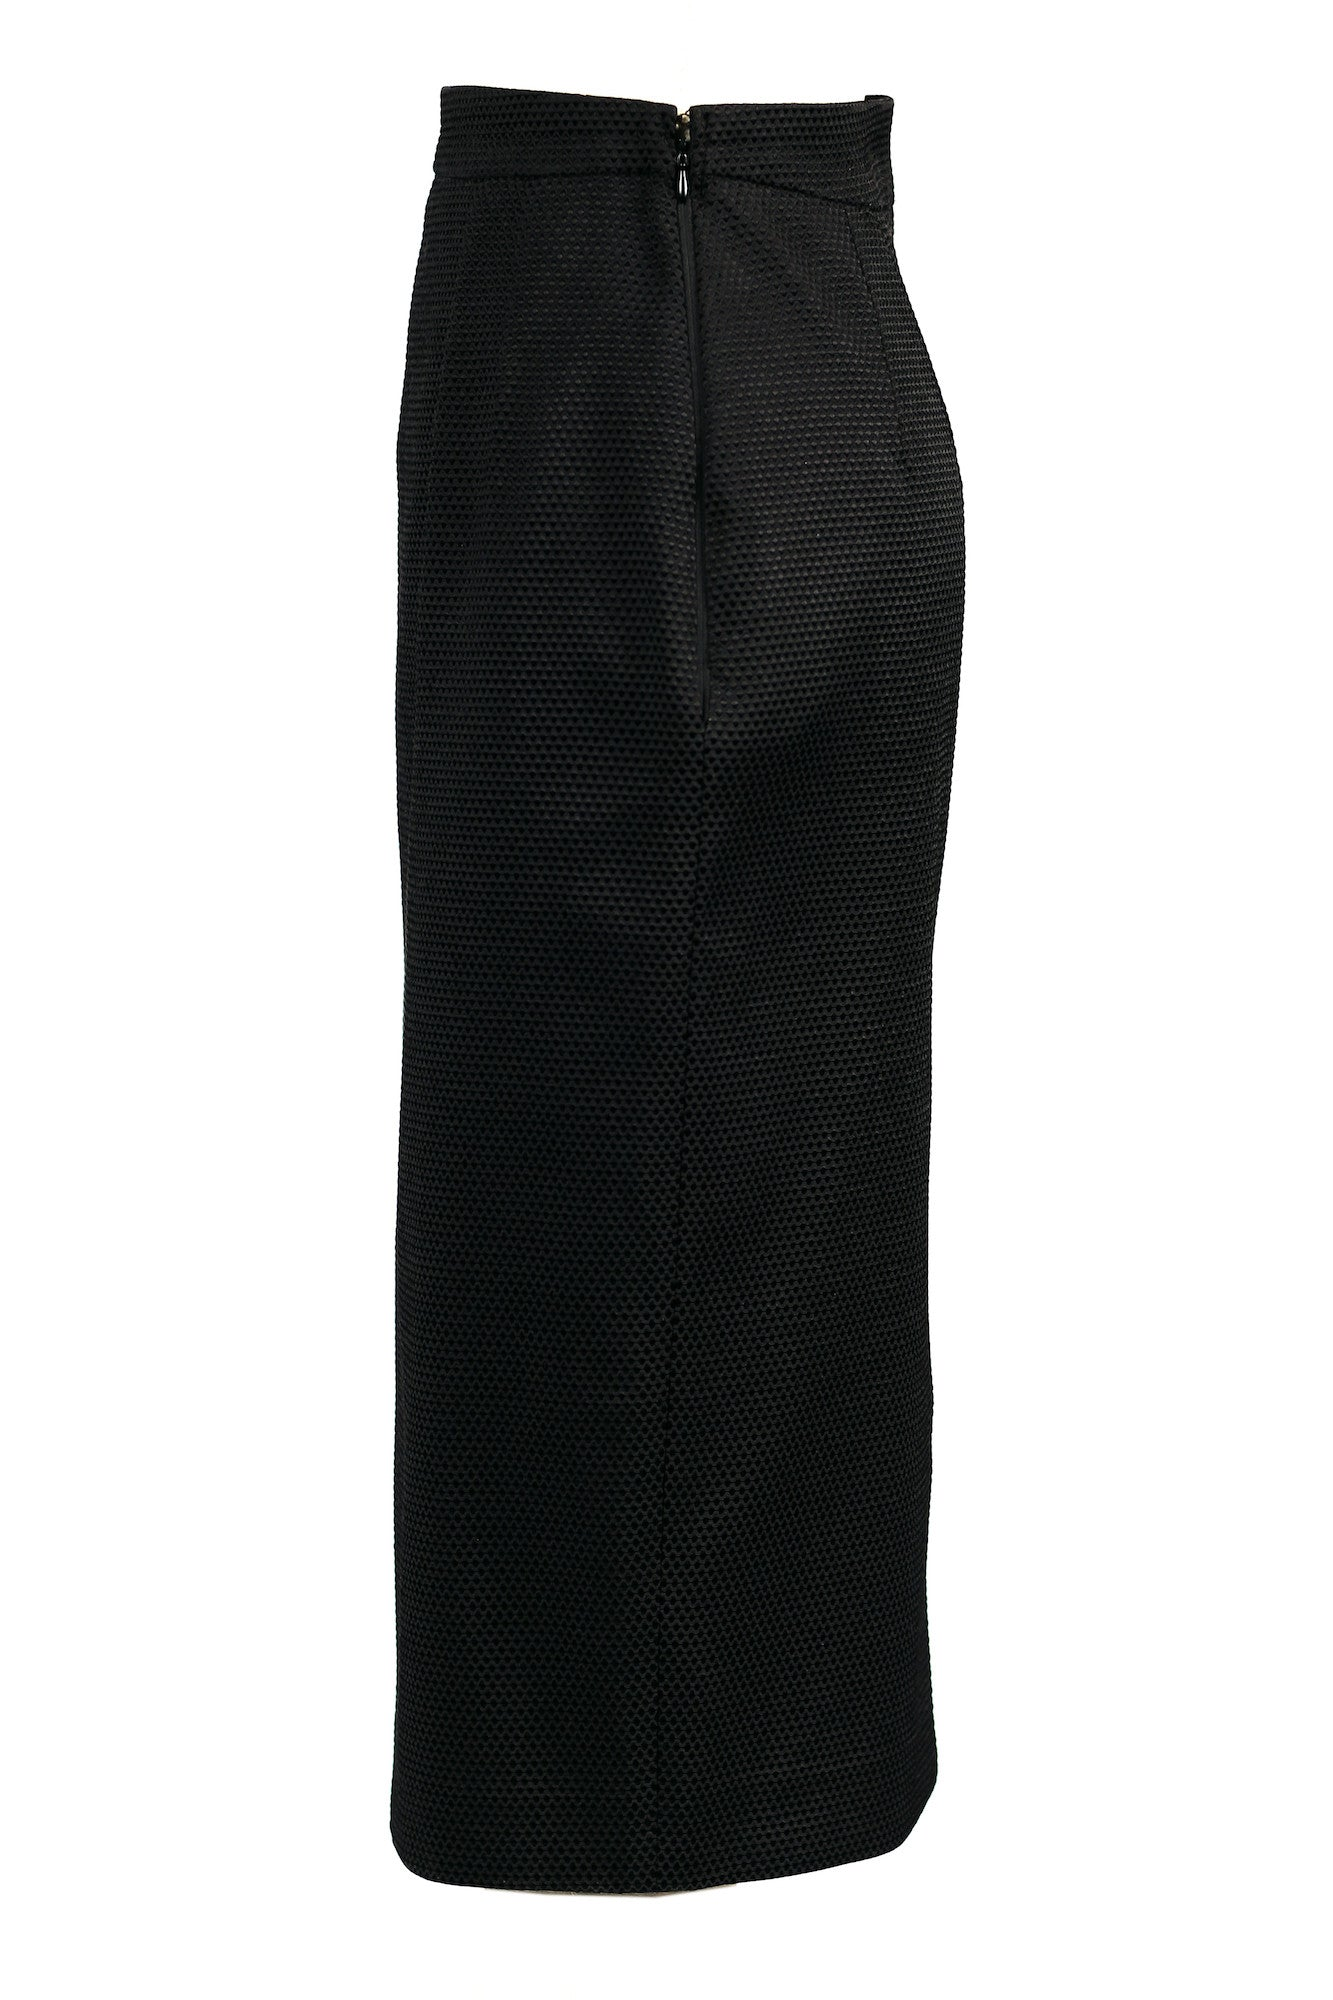 Textured High-waisted Pencil Skirt for All Seasons - Steve Guthrie - 6